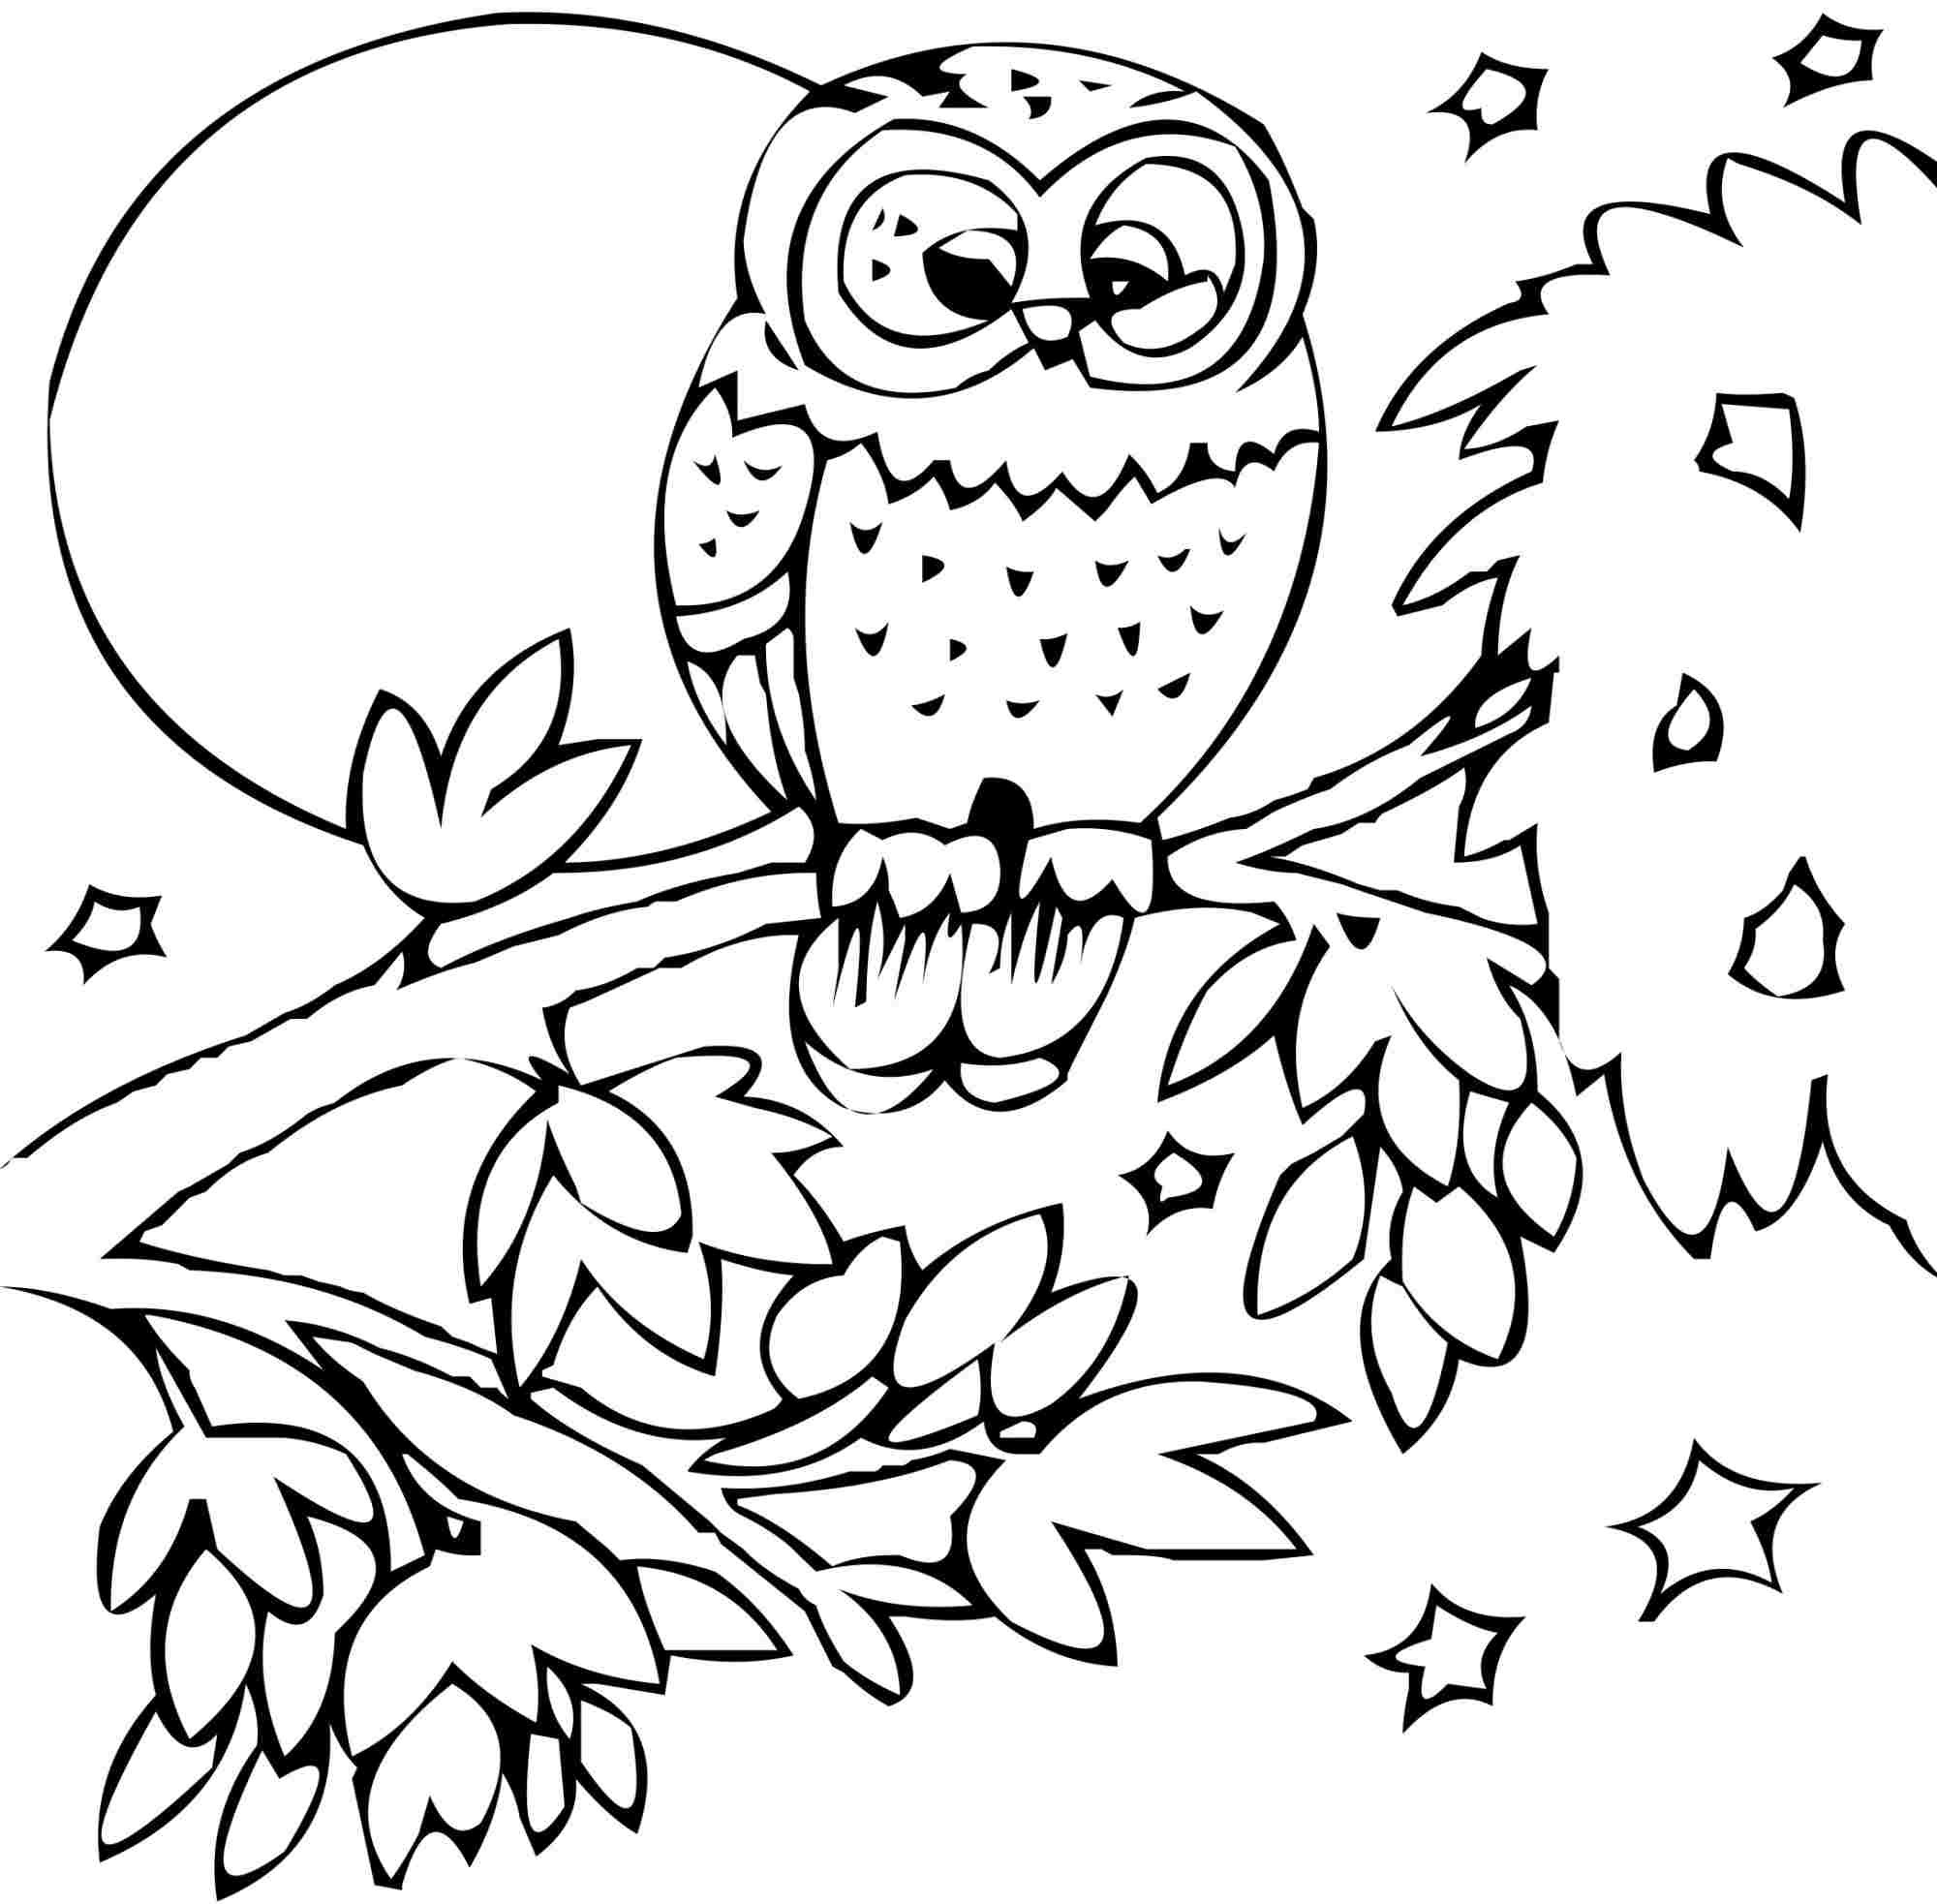 Coloring Book For Kids Animals  Zoo Animals Coloring Pages coloringsuite